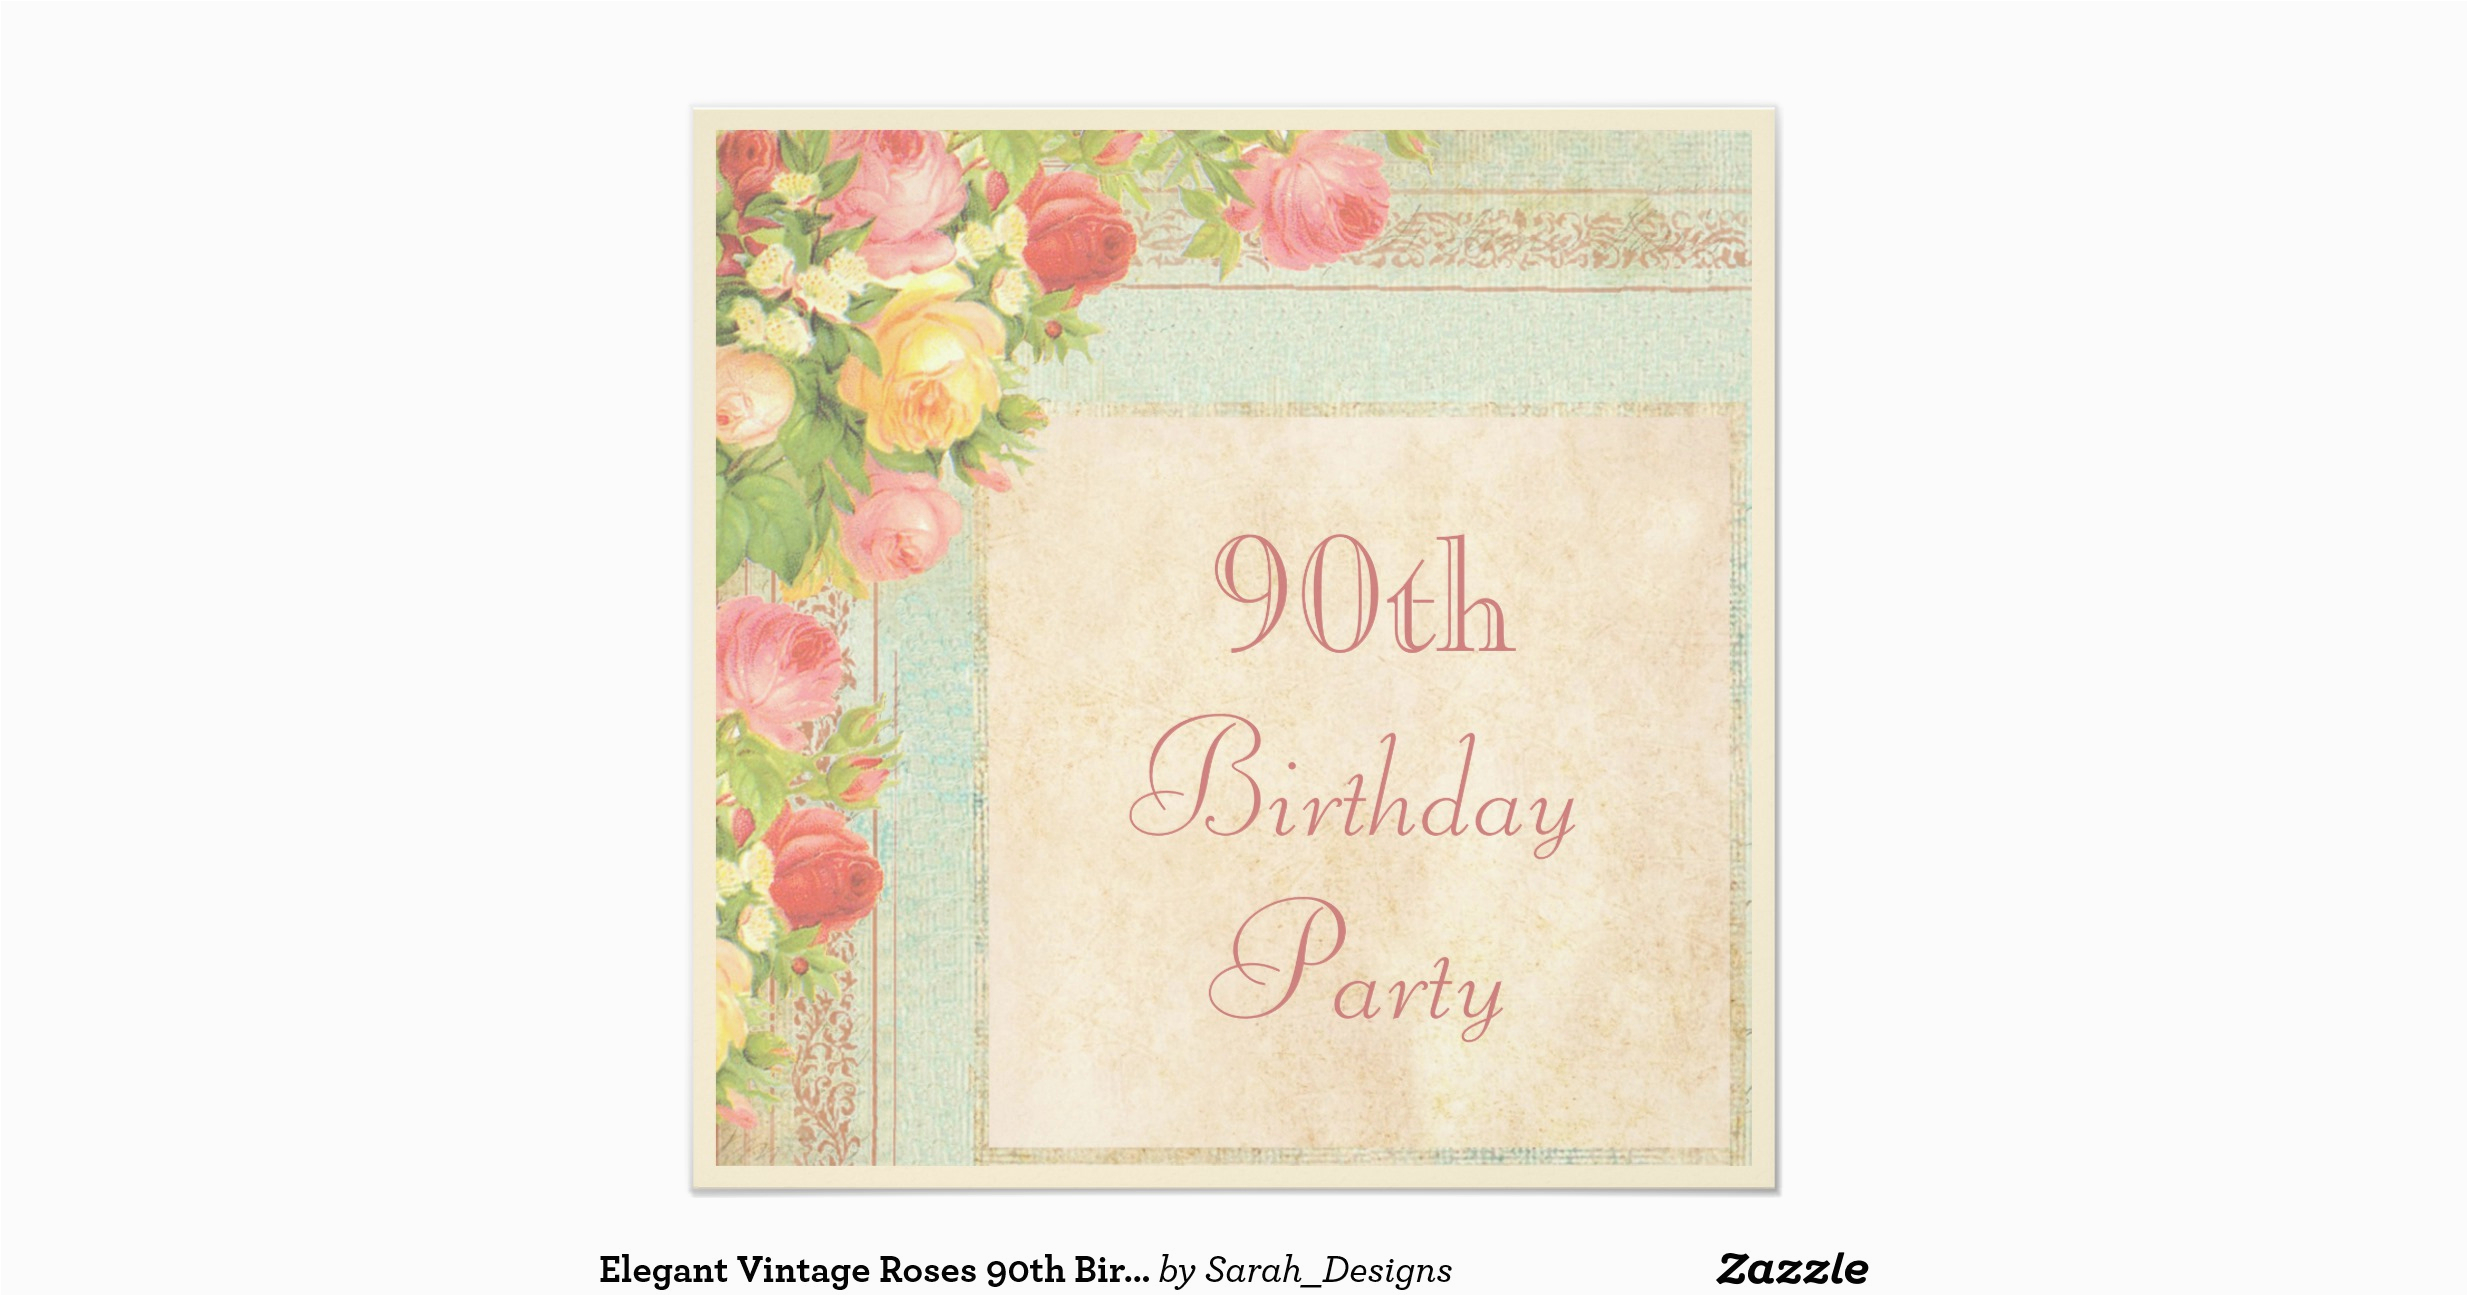 Elegant 90th Birthday Decorations Vintage Roses Party Invitation